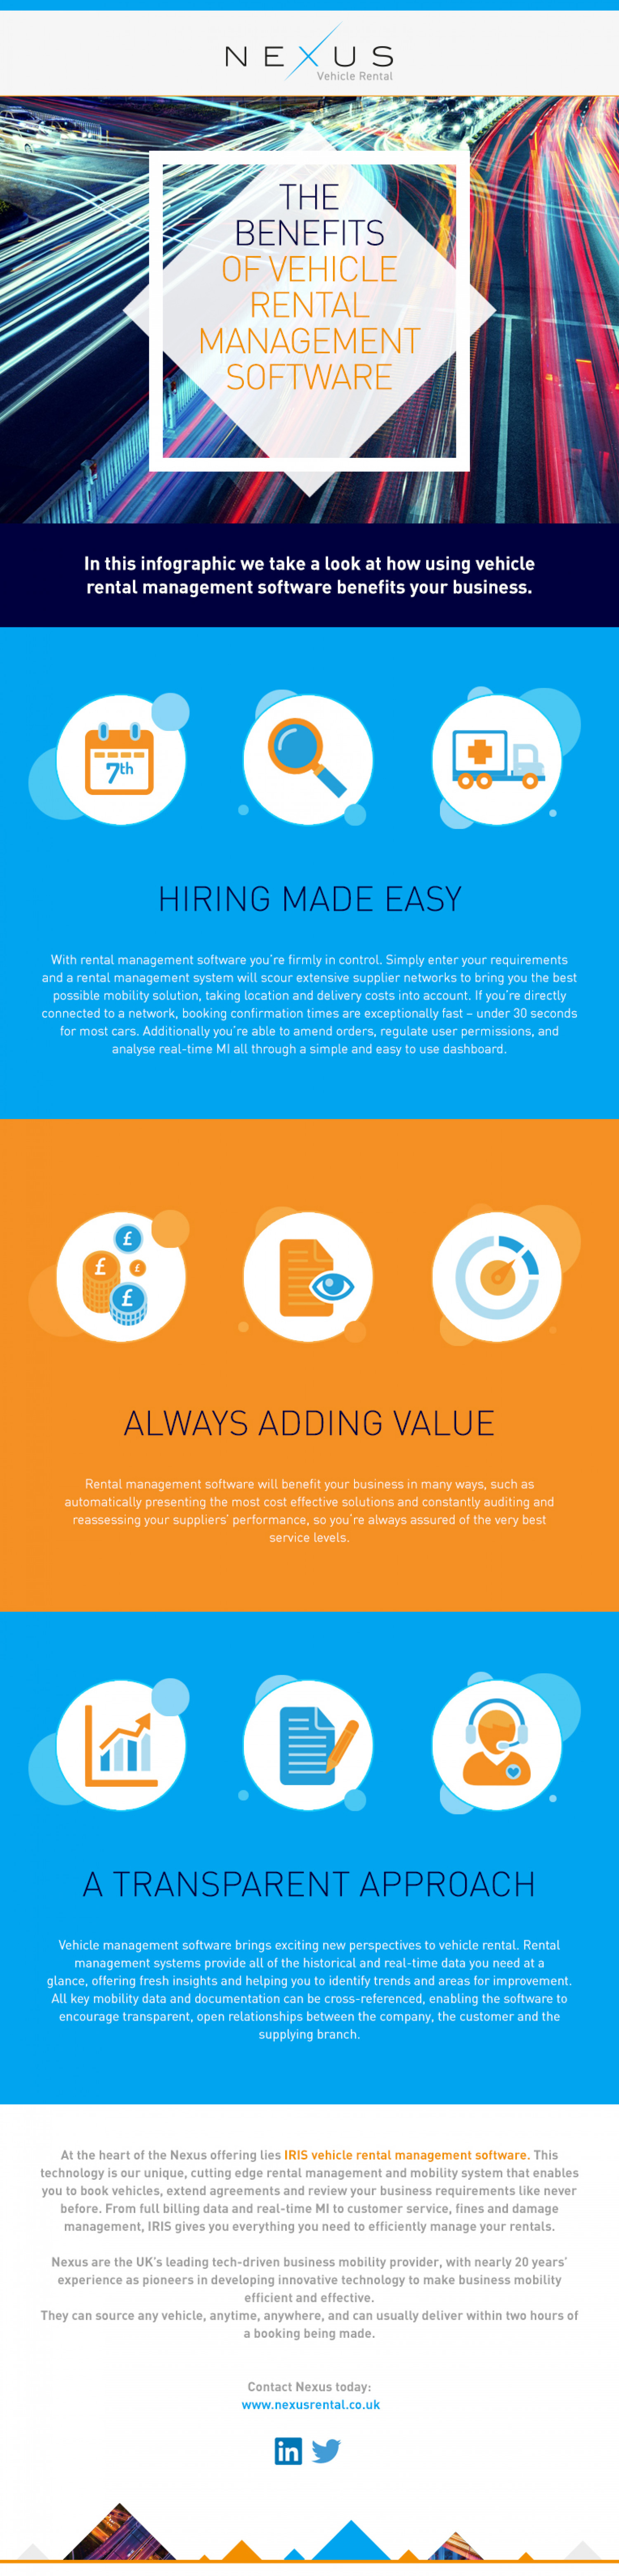 The Benefits of Vehicle Rental Management Software Infographic